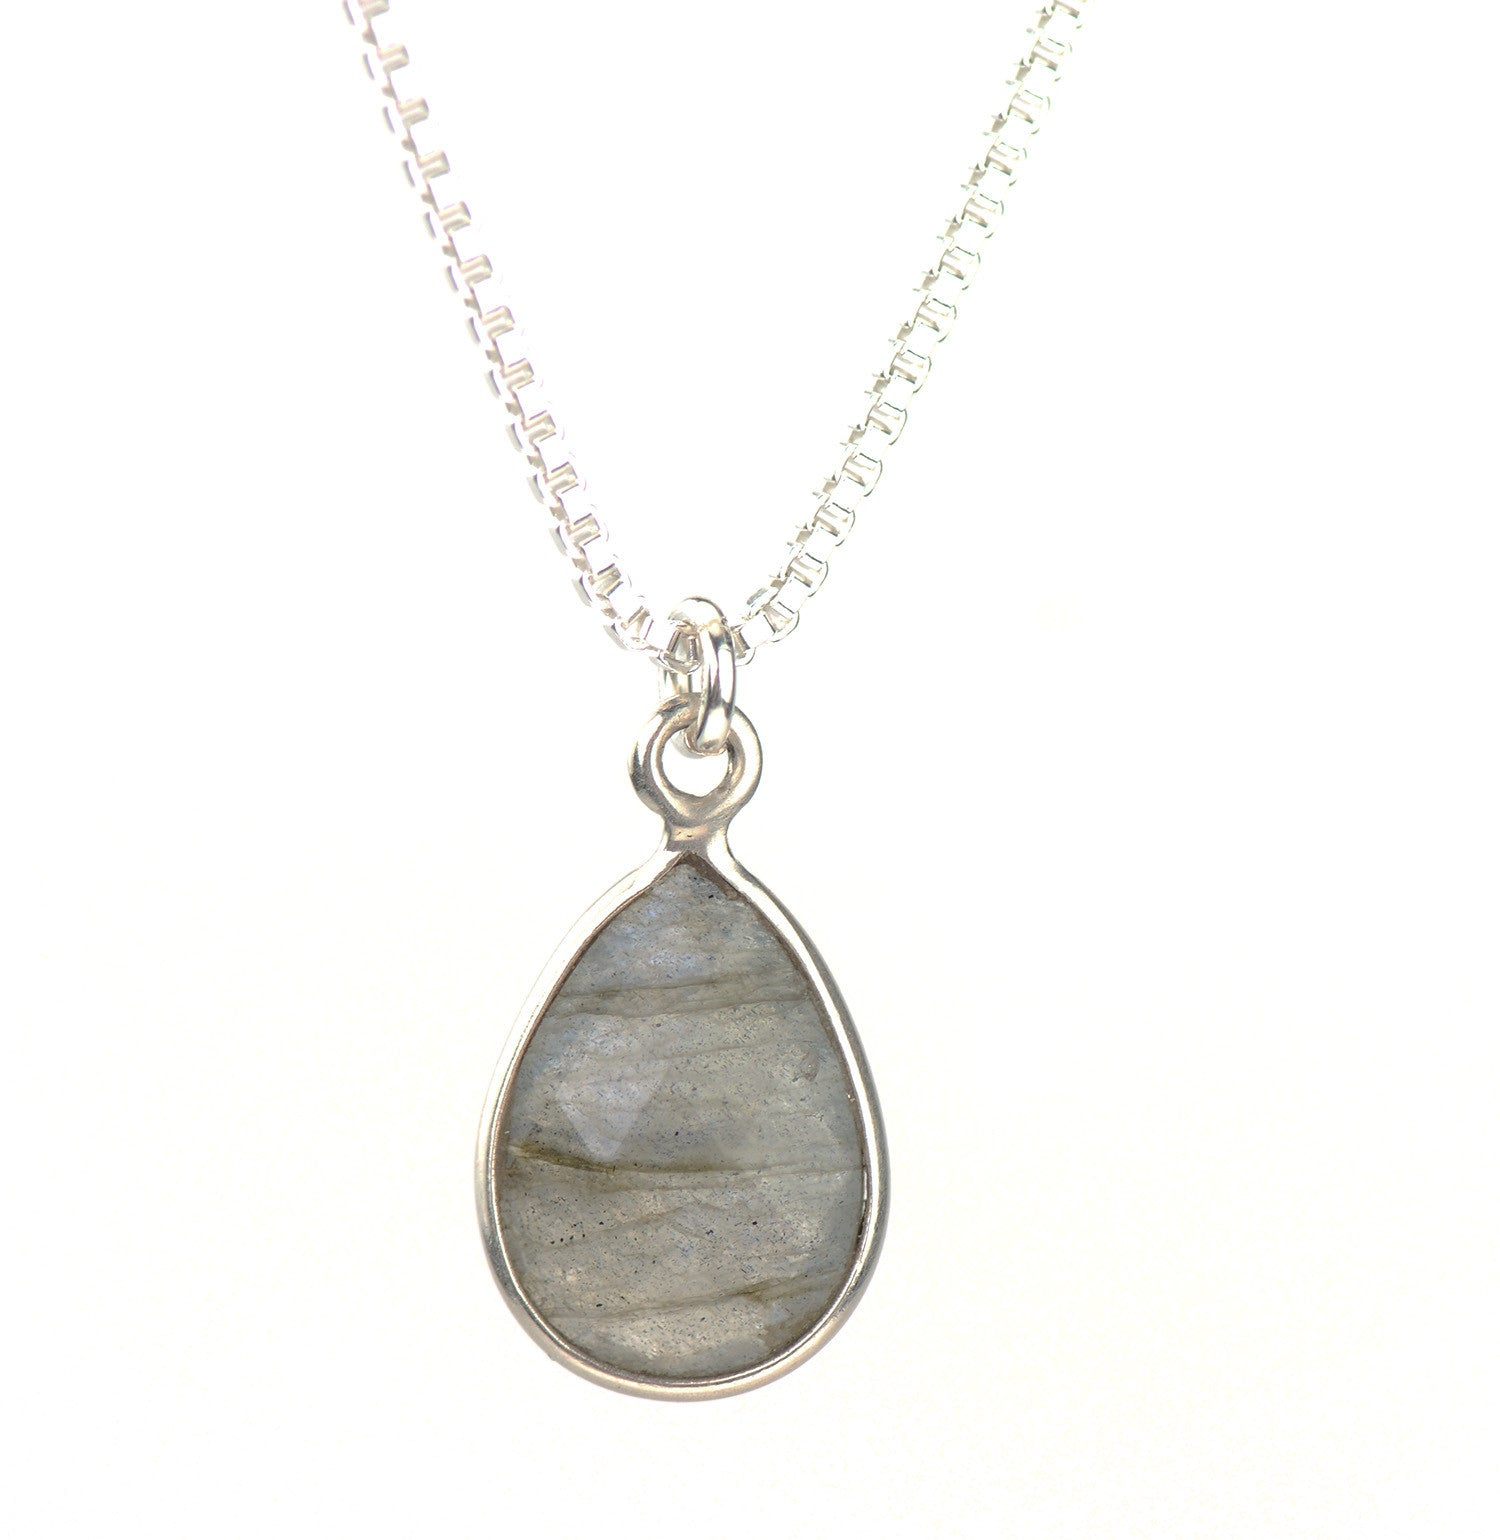 Labradorite pendant with a 20 inch sterling silver chain labradorite pendant with a 20 inch sterling silver chain mozeypictures Choice Image